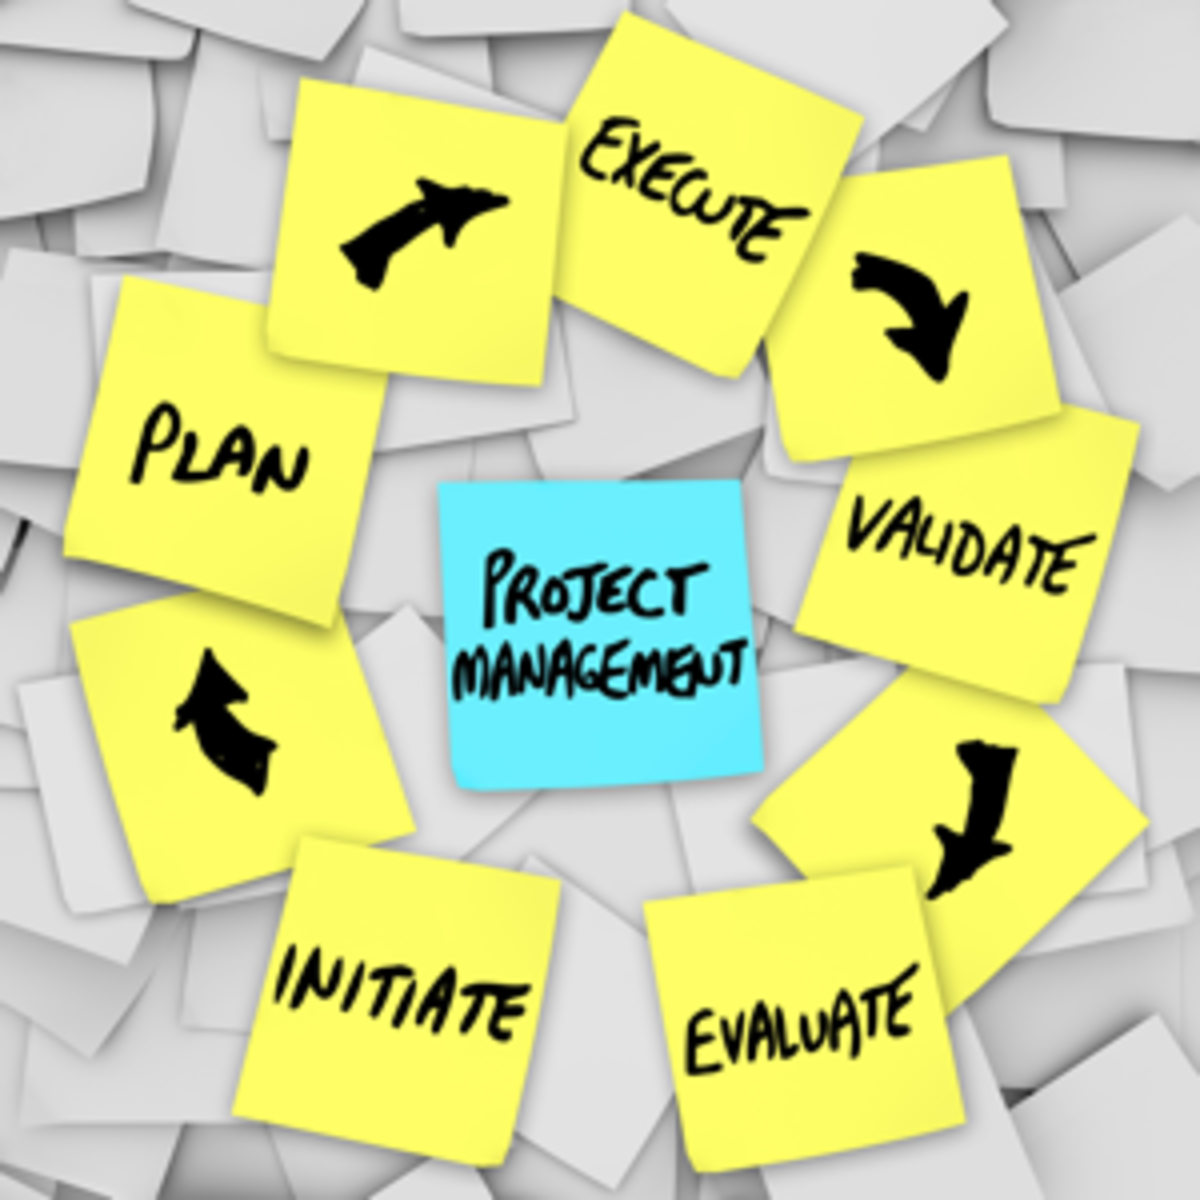 What's the Difference Between a Project Manager and a Business Analyst?